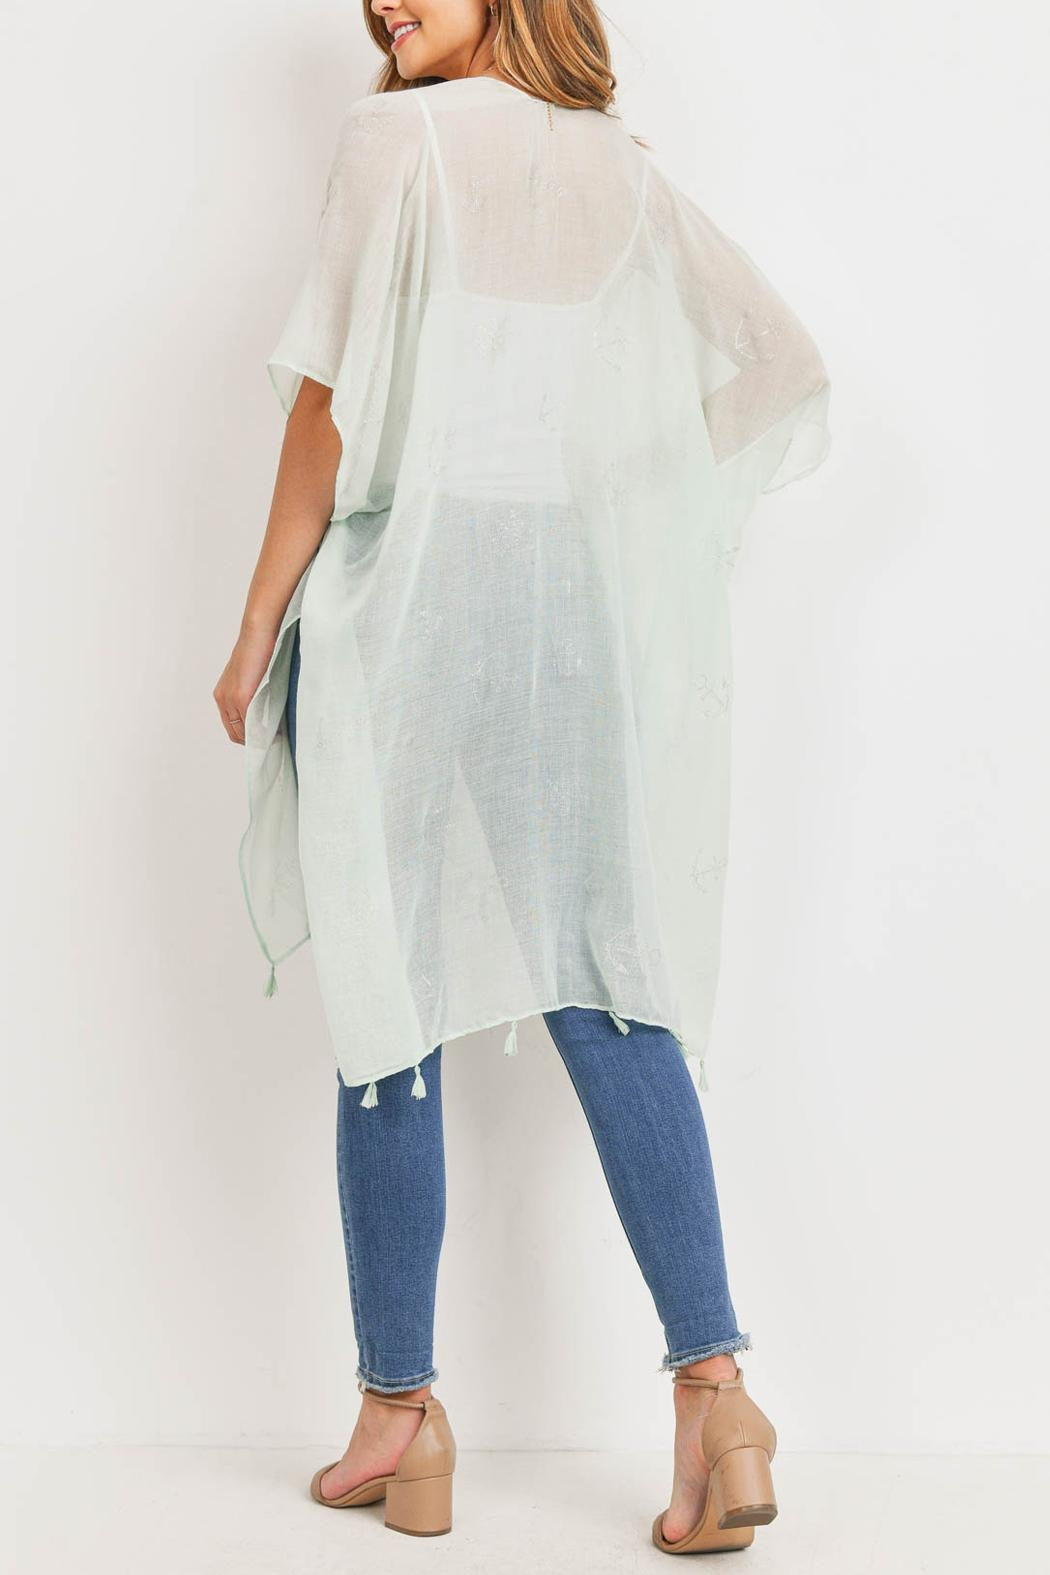 Riah Fashion Lightweight Anchor & Leaf Beach Cover Ups - Front Full Image